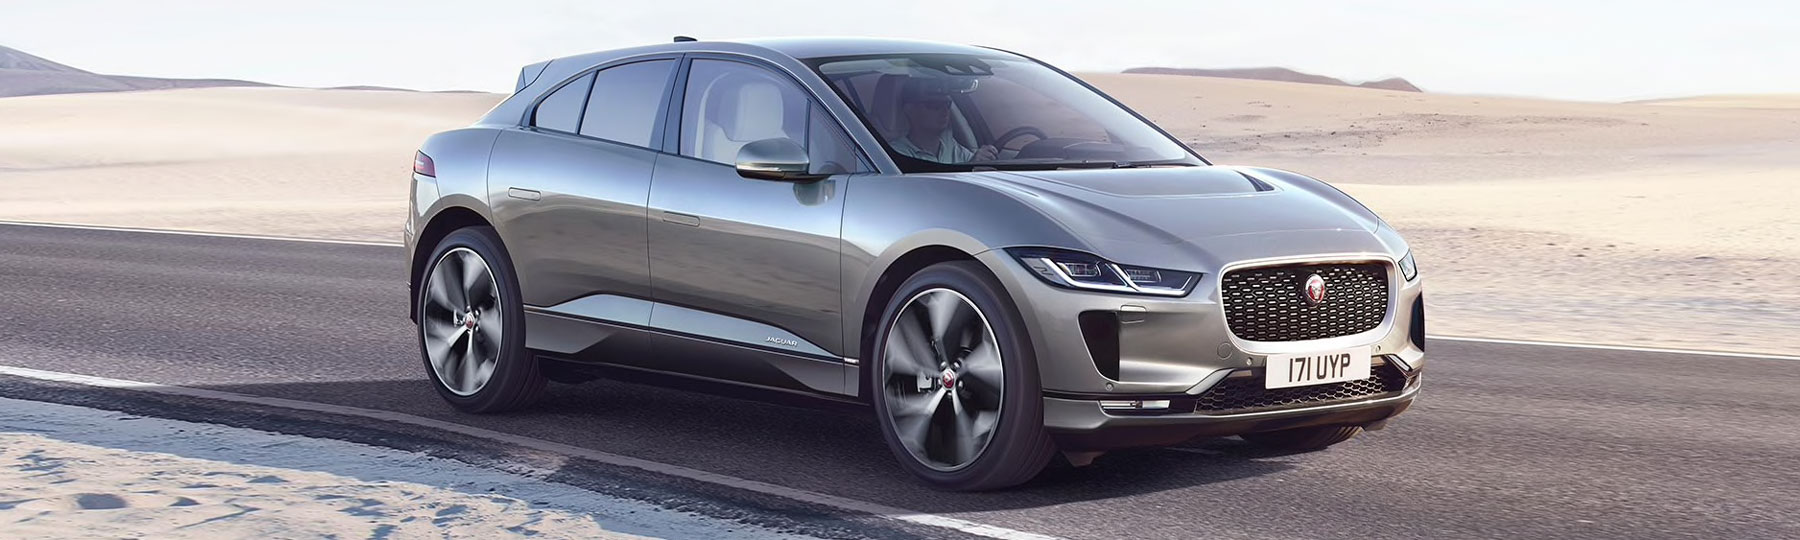 All Electric Jaguar I-PACE Personal Contract Hire Offer